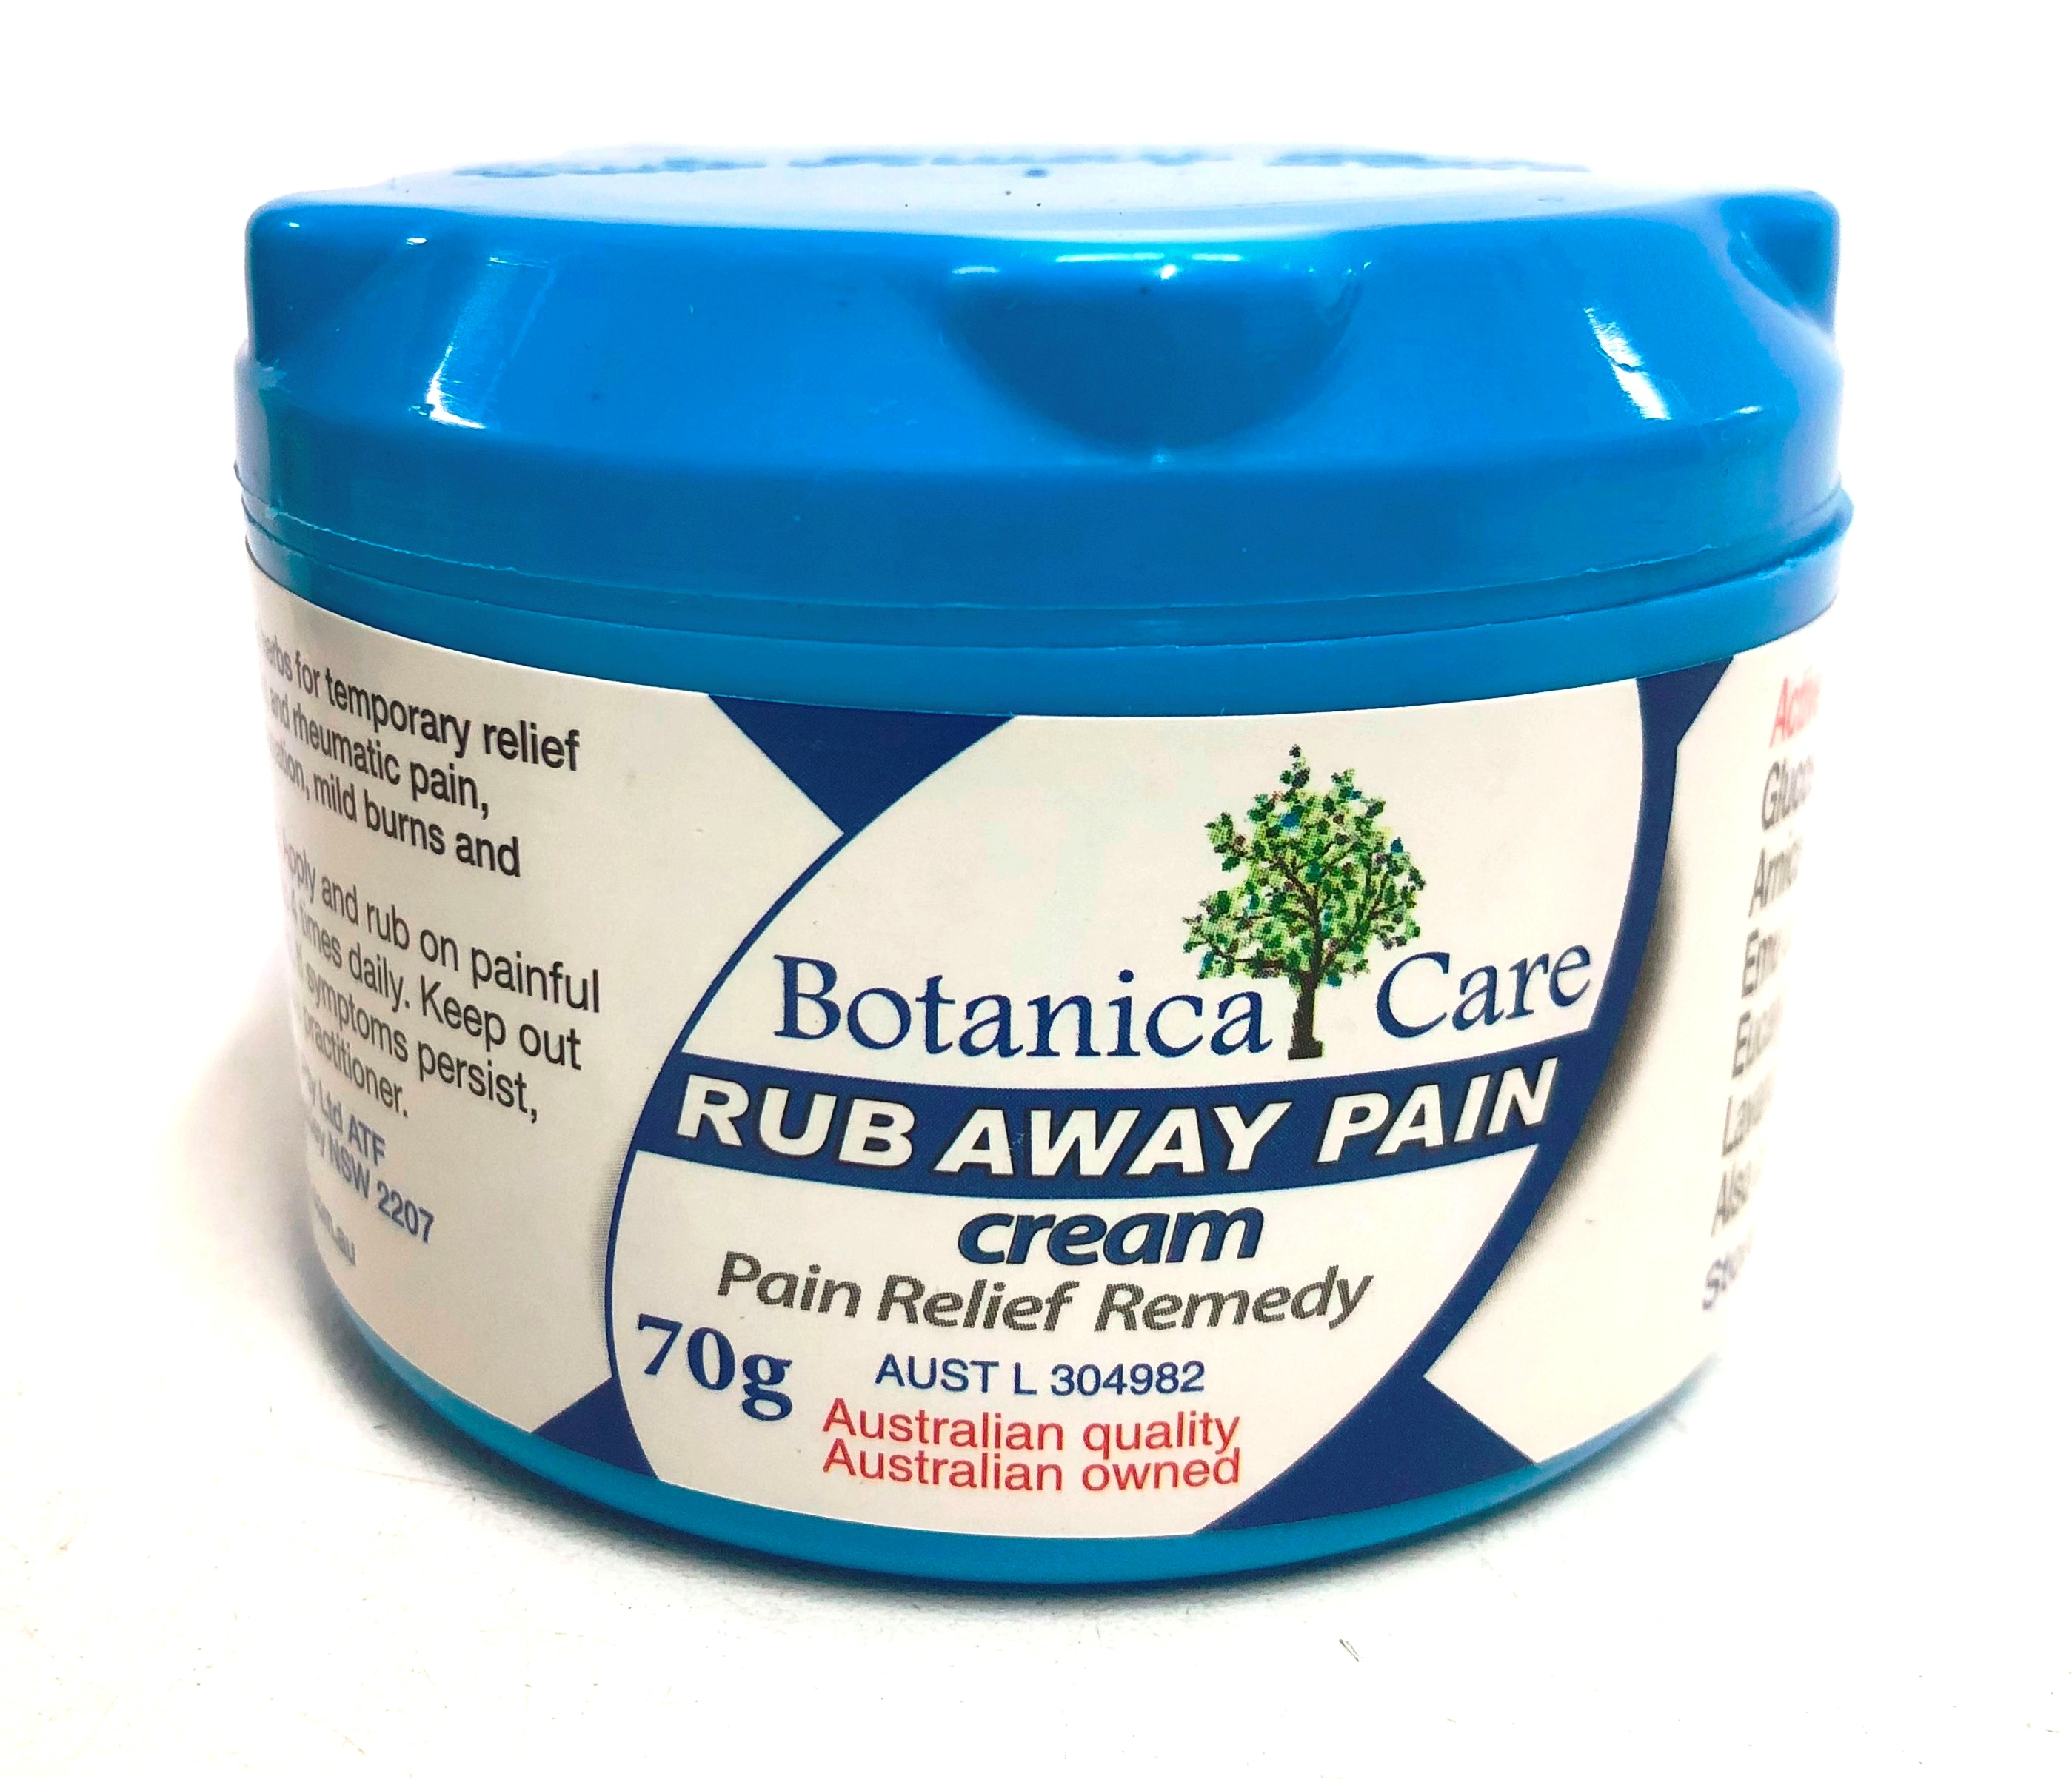 Botanical Care / RUB AWAY PAIN